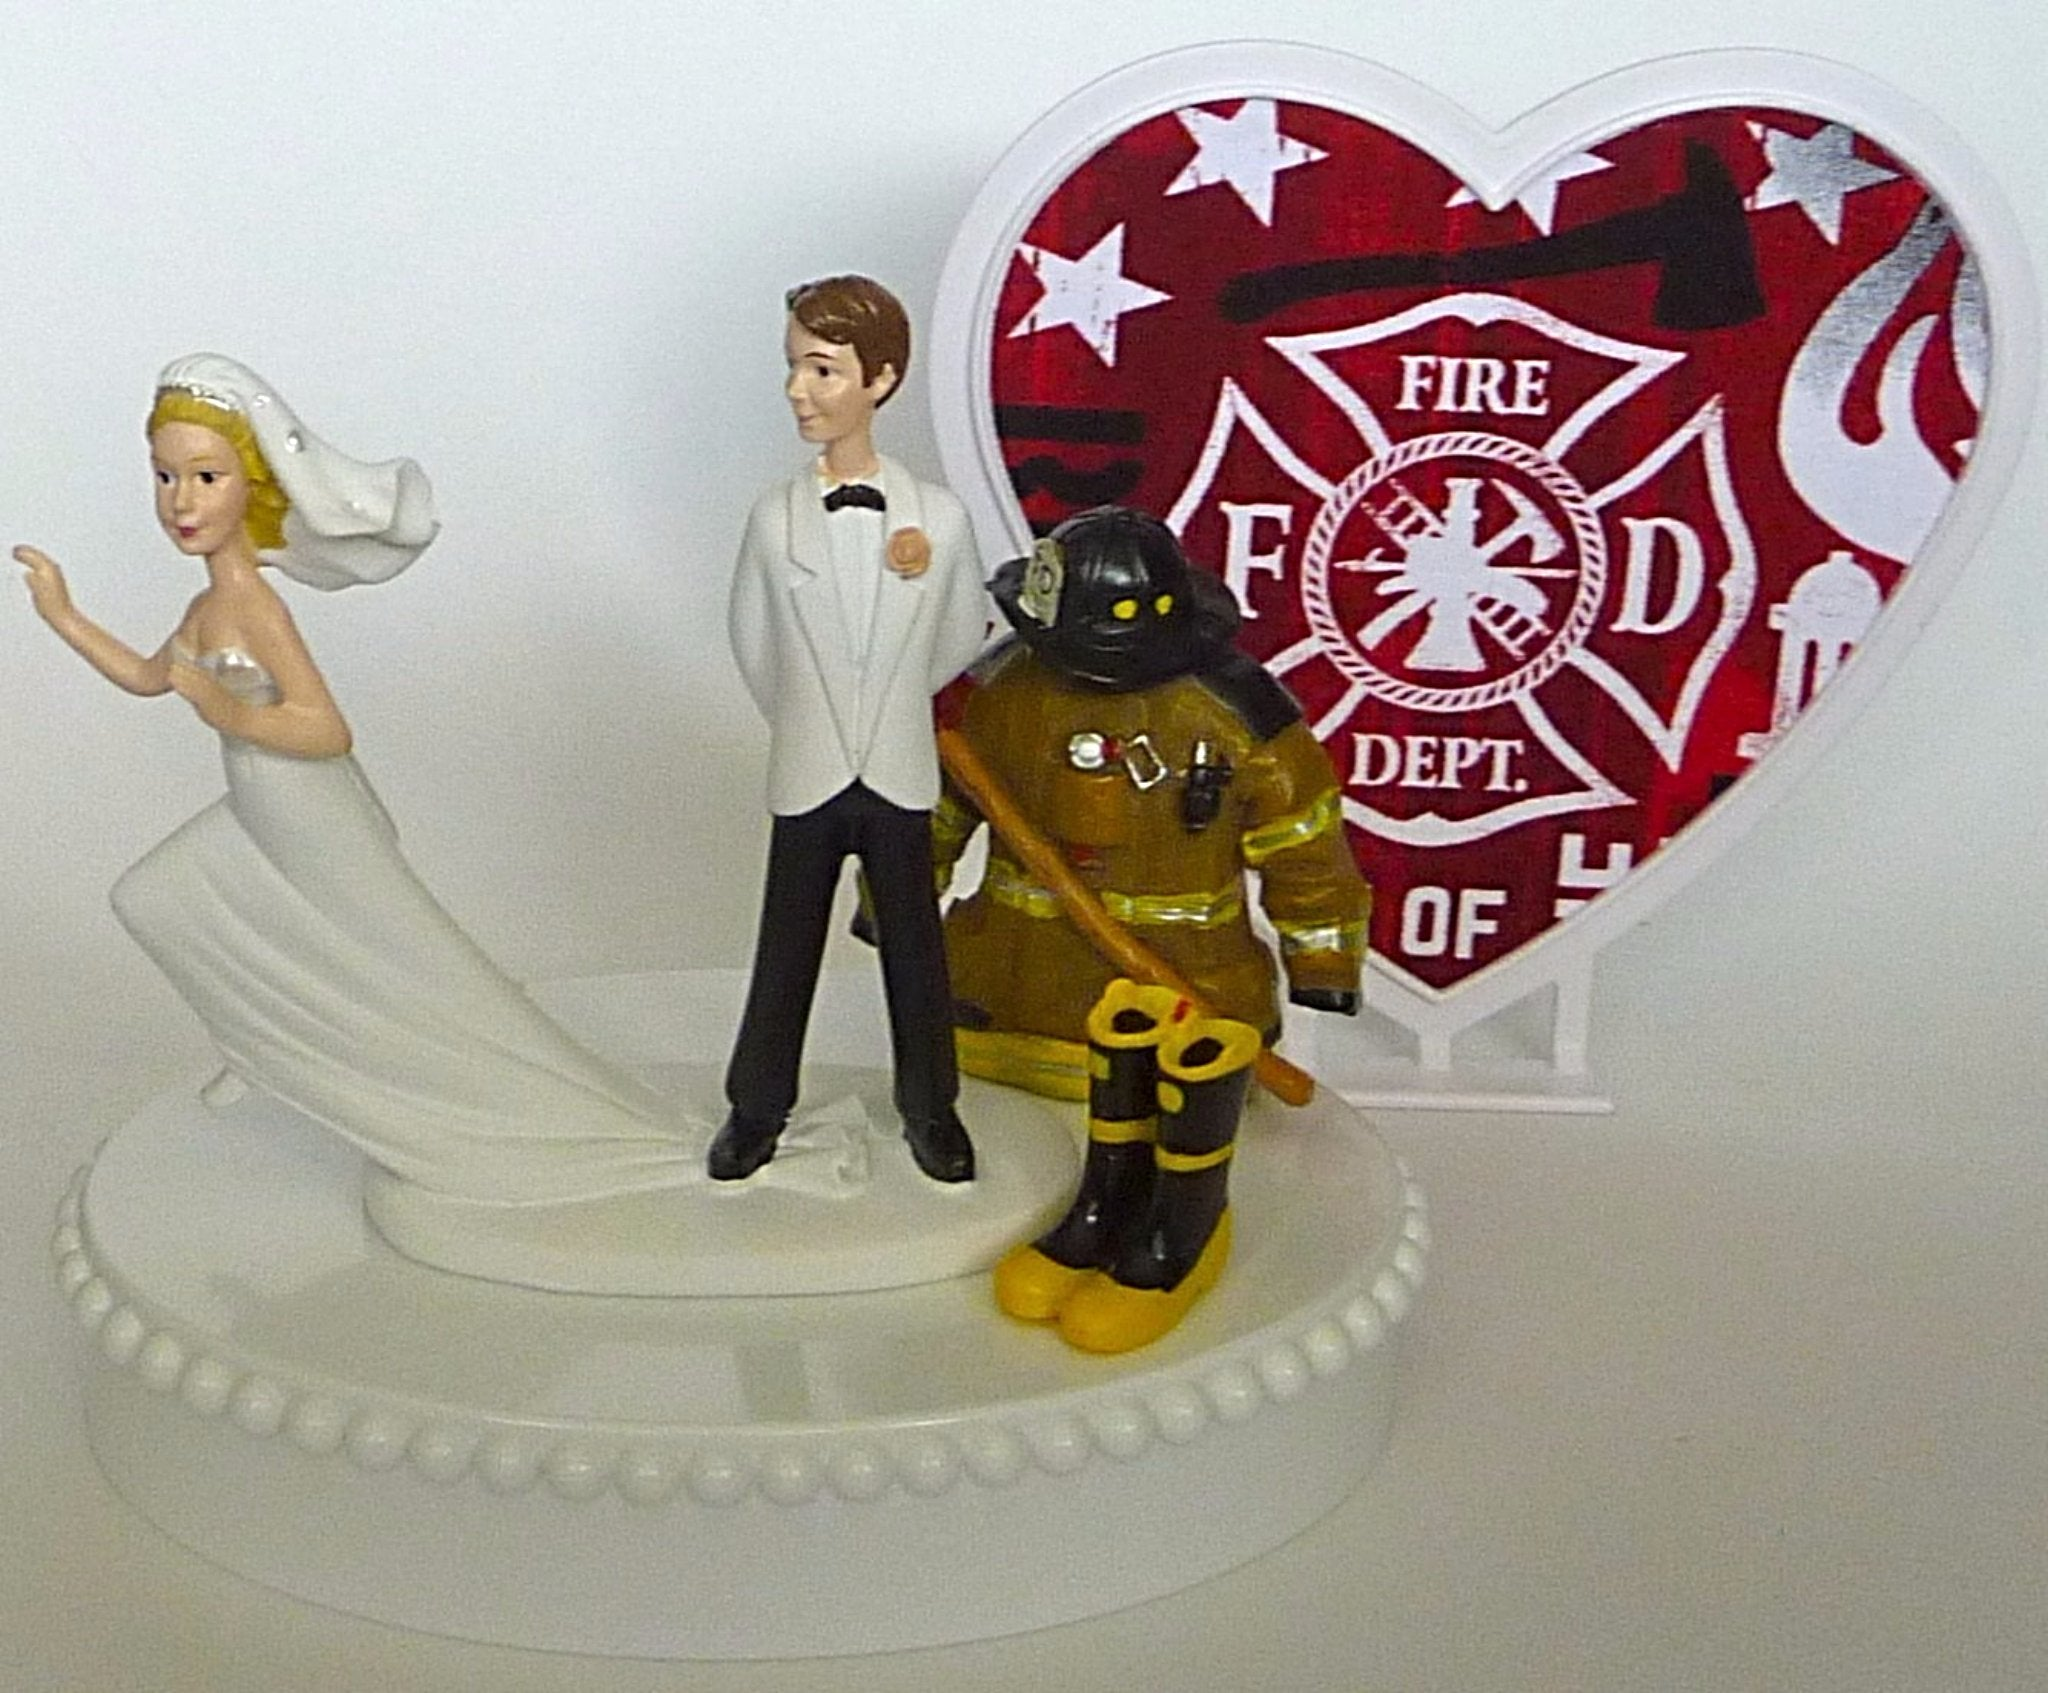 Fun Wedding Things fireman wedding cake topper groom's cake top firefighter boots axe uniform helmet humorous heart backdrop